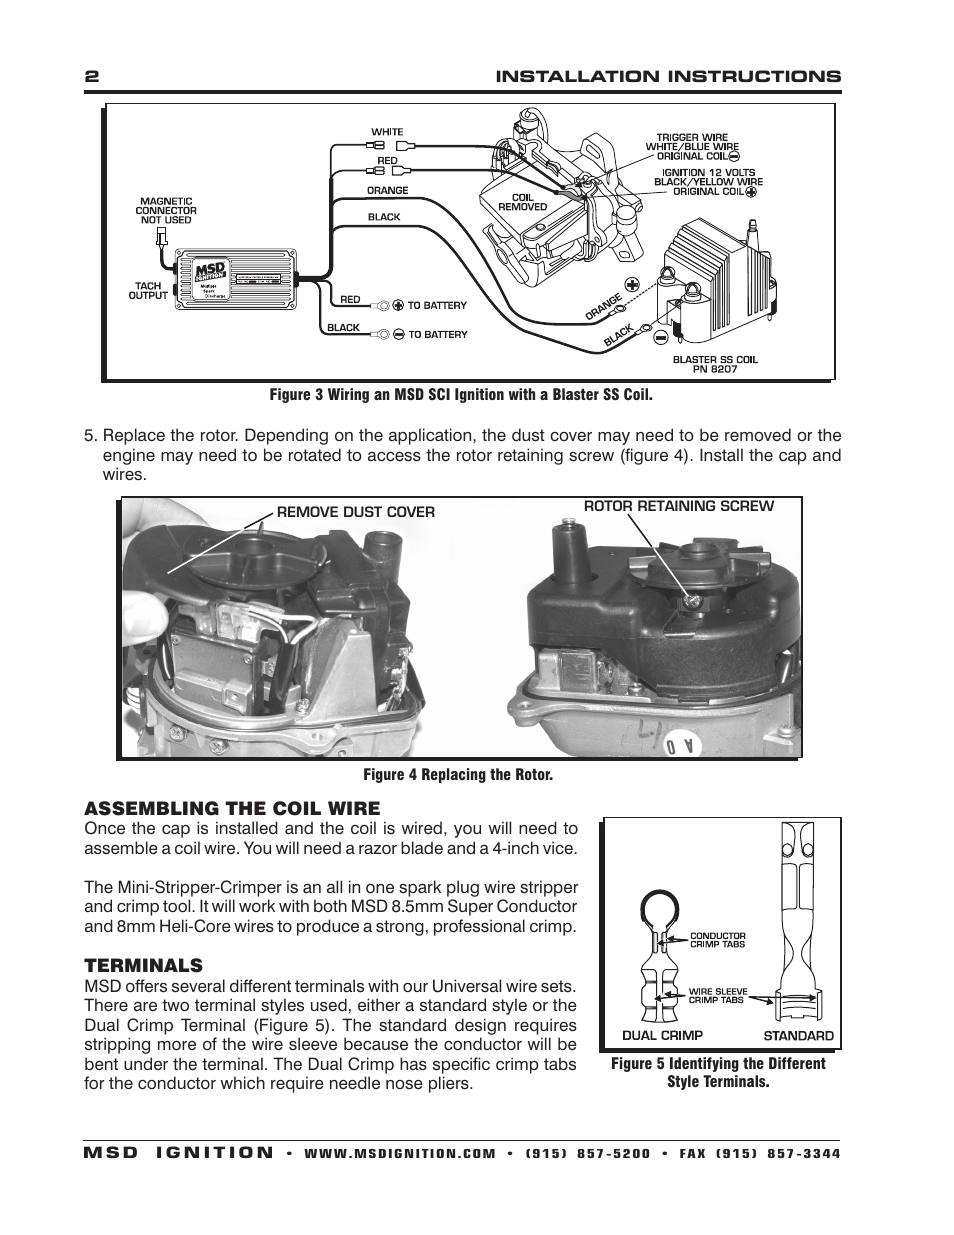 Gsr Distributor Wiring Diagram Library Msd Coil Ignition Conversion Hondatech 82933 Modified Cap And Rotor For Acura Integra 94 01 Installation User